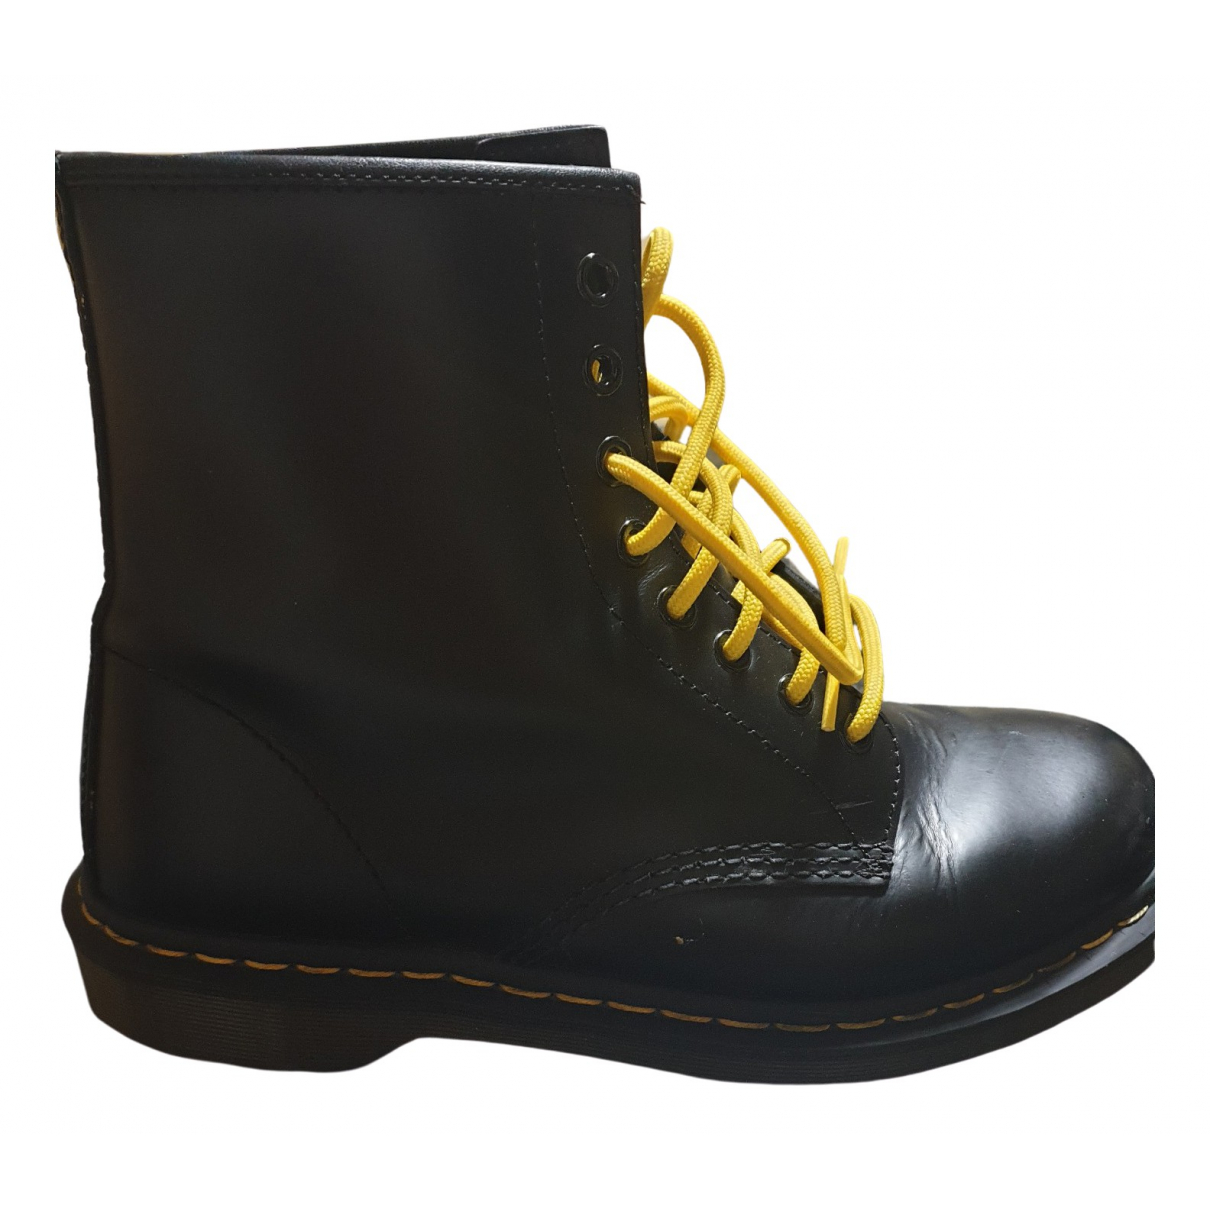 Dr. Martens 1460 Pascal (8 eye) Black Leather Boots for Men 42 EU